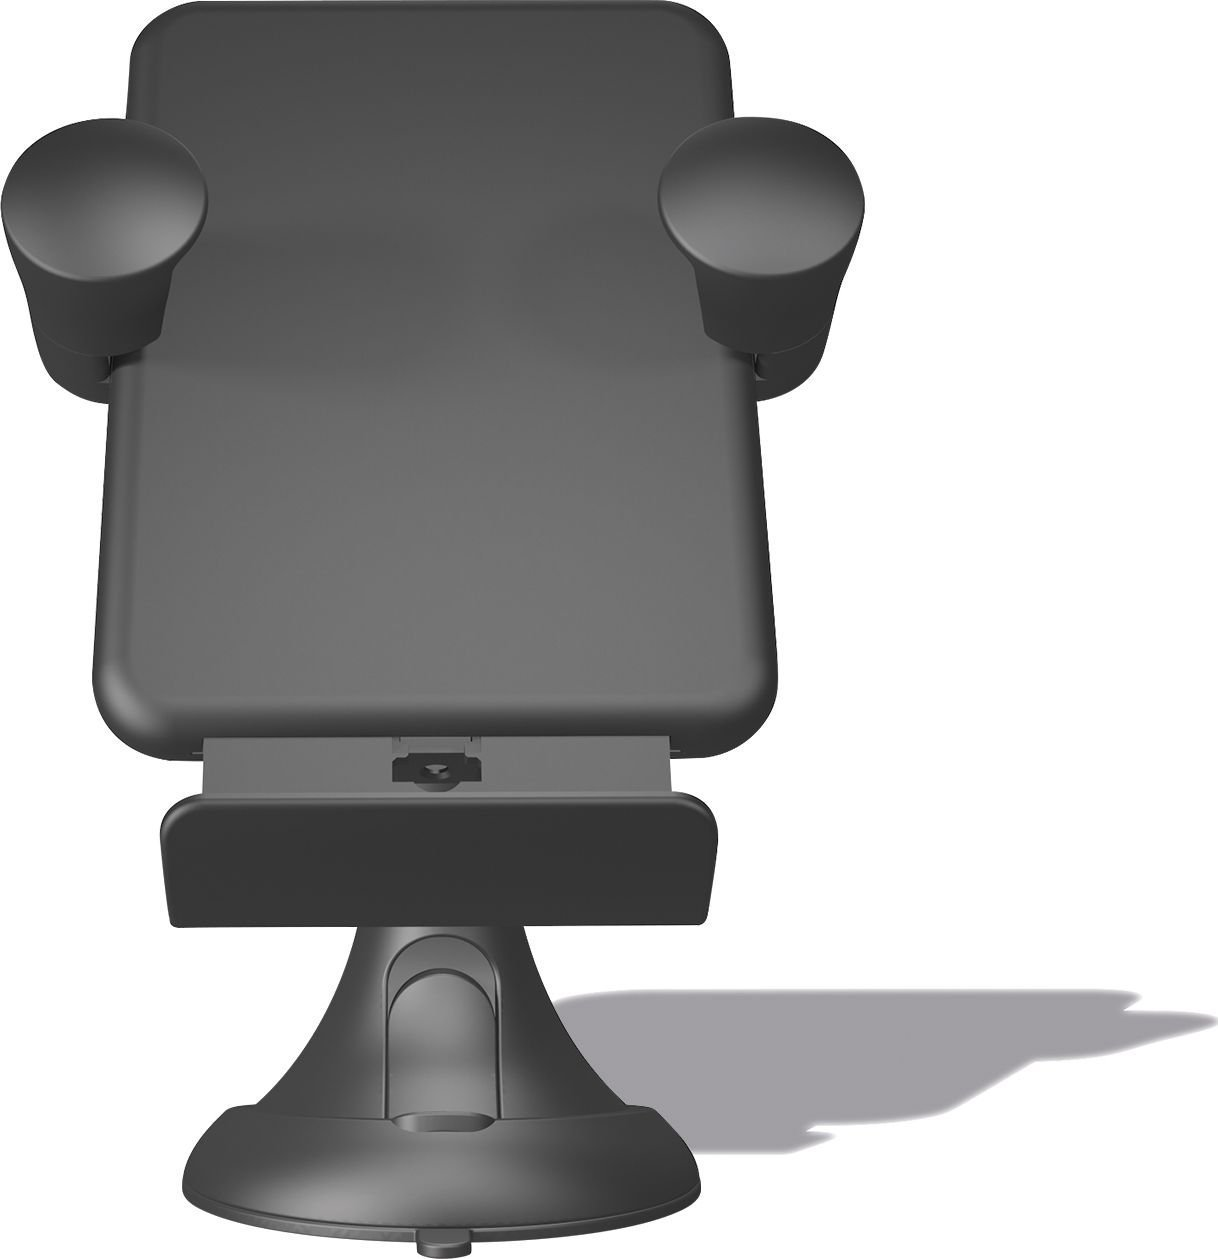 Wireless Car Charger and Stand by ZENS Reliable Charging and Adjustable Cellphone Holder Works with All Qi Enabled Devices 4352738751 5W Qi Wireless Air Vent Phone Charger and Holder